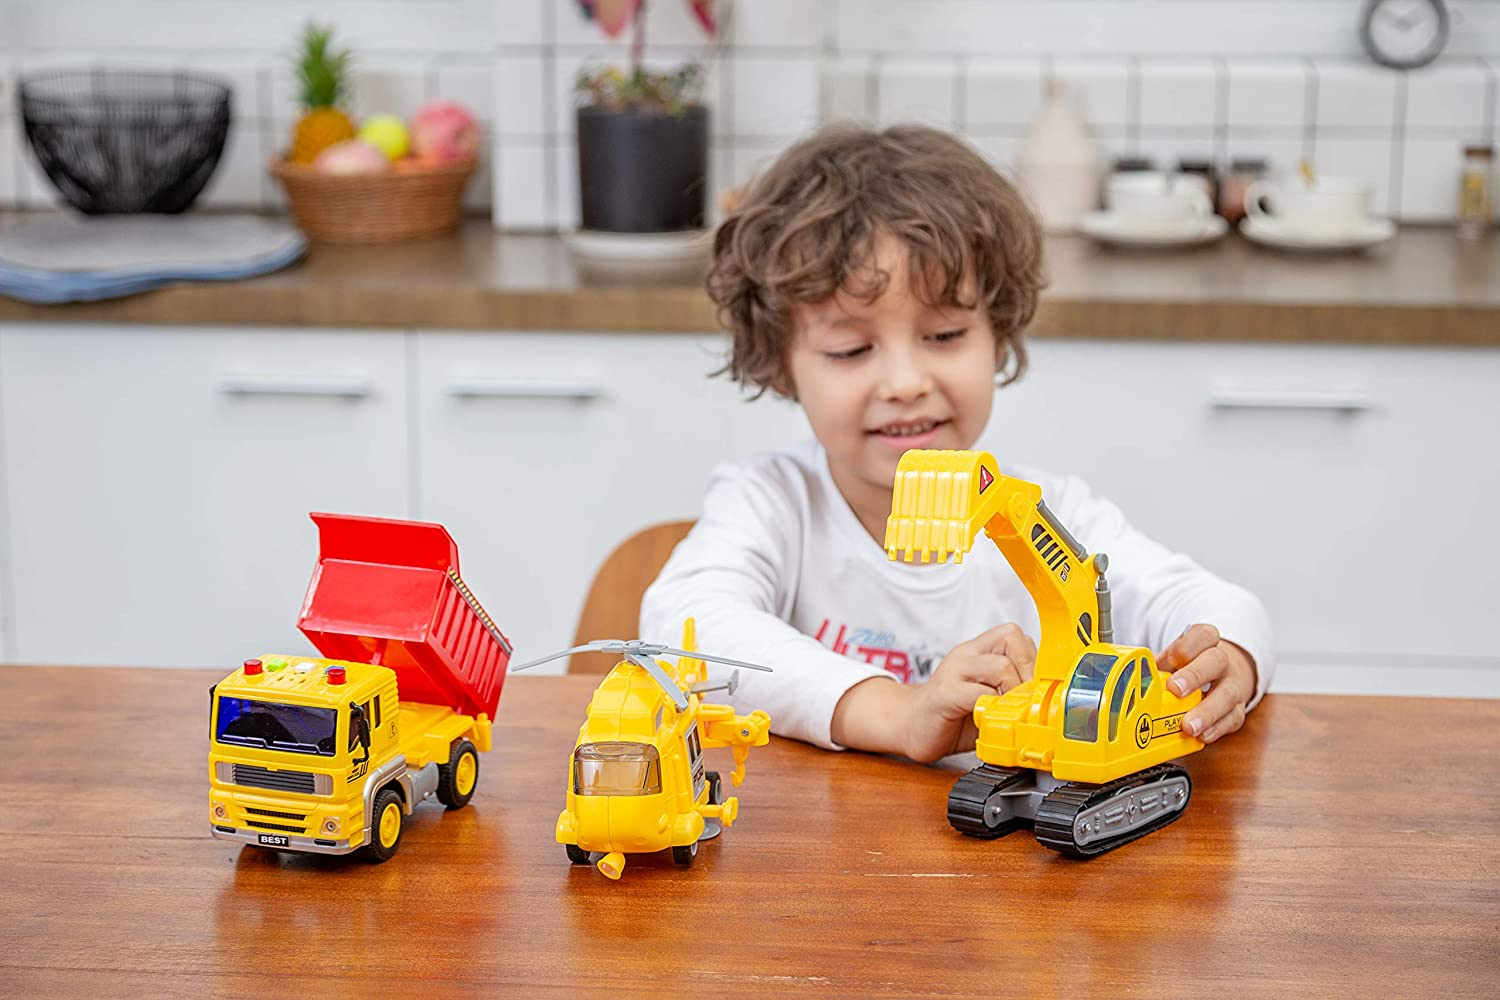 and Construction Truck with Lights and Sounds // Sirens Excavator JOYIN 3 in 1 Friction Powered City Construction Vehicle Car Set Including Helicopter